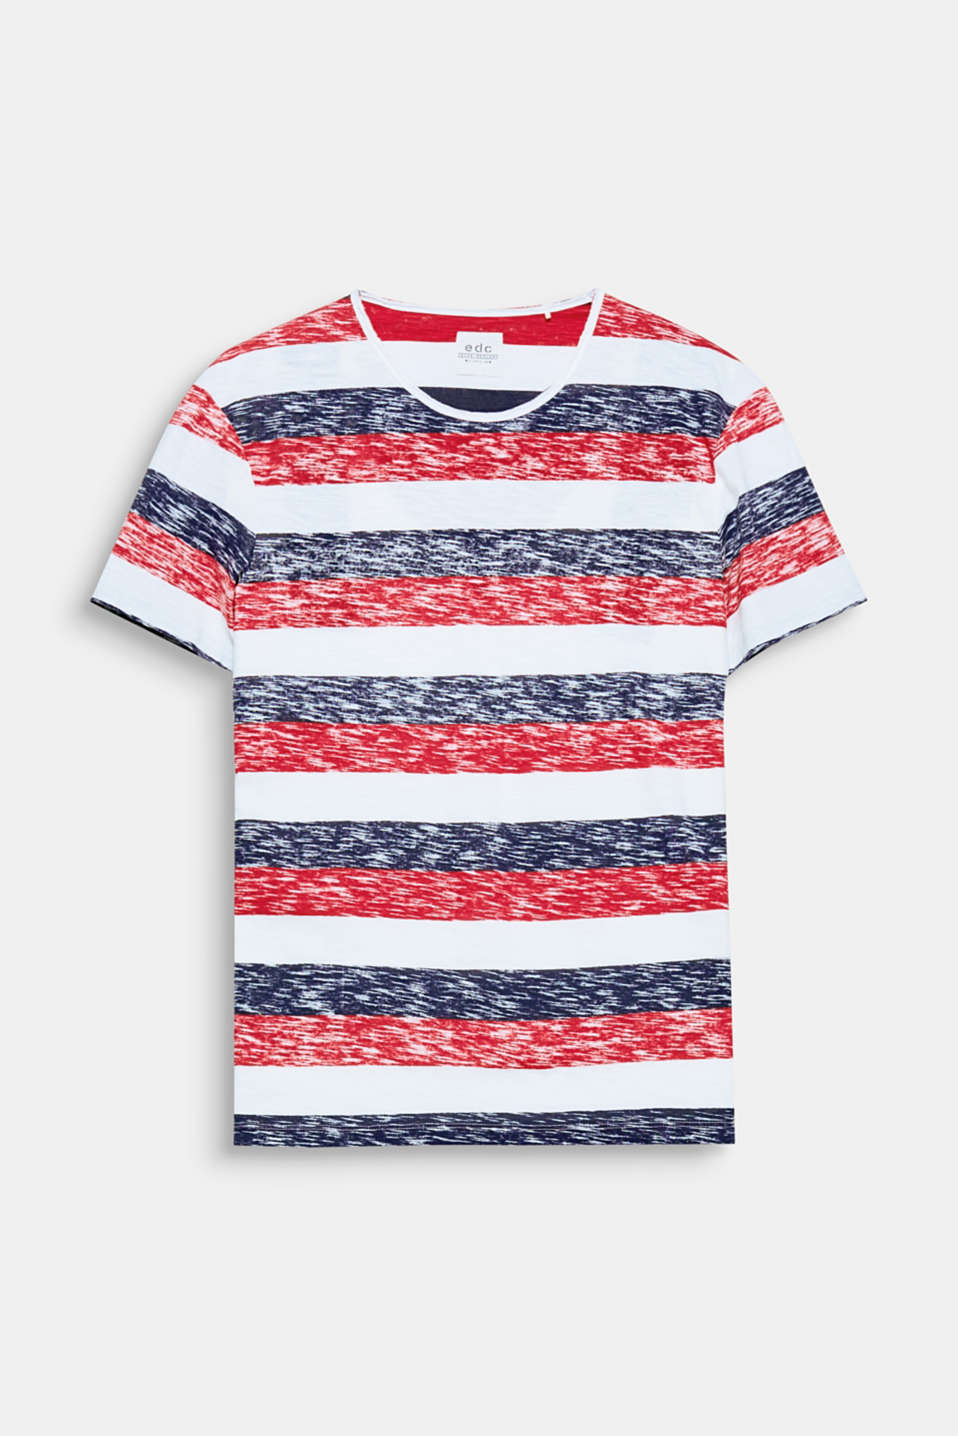 The striped inside-out print gives this pure cotton t-shirt its casual look.